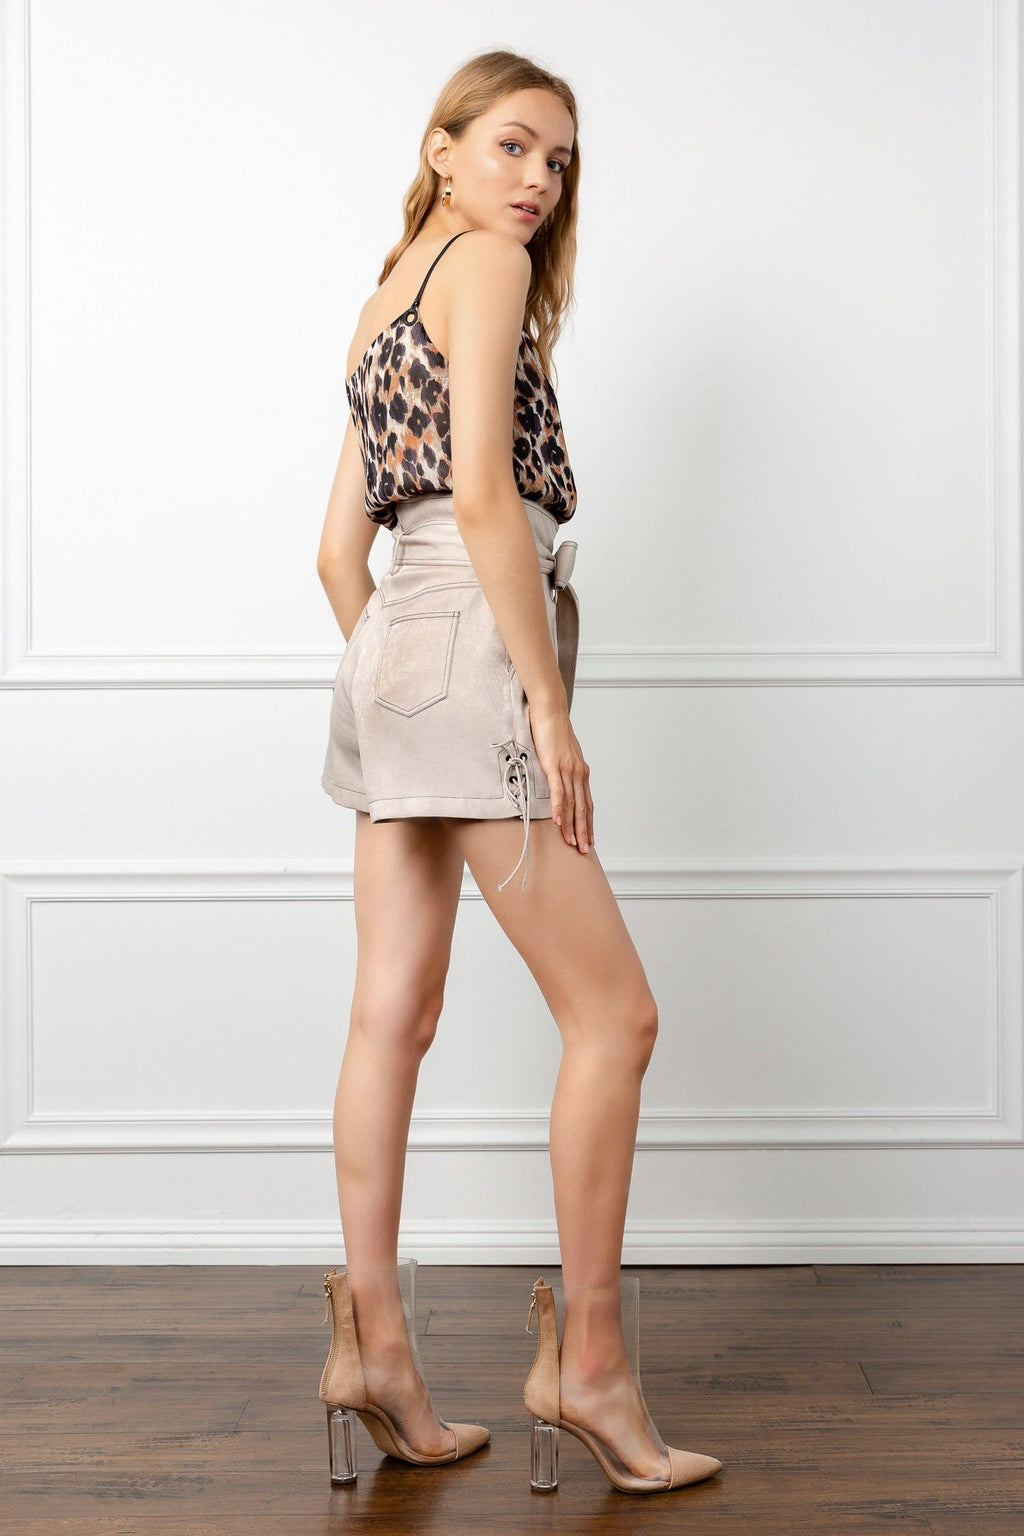 blonde model full body shot wearing beige shorts and leopard pattern tank top by j.ing